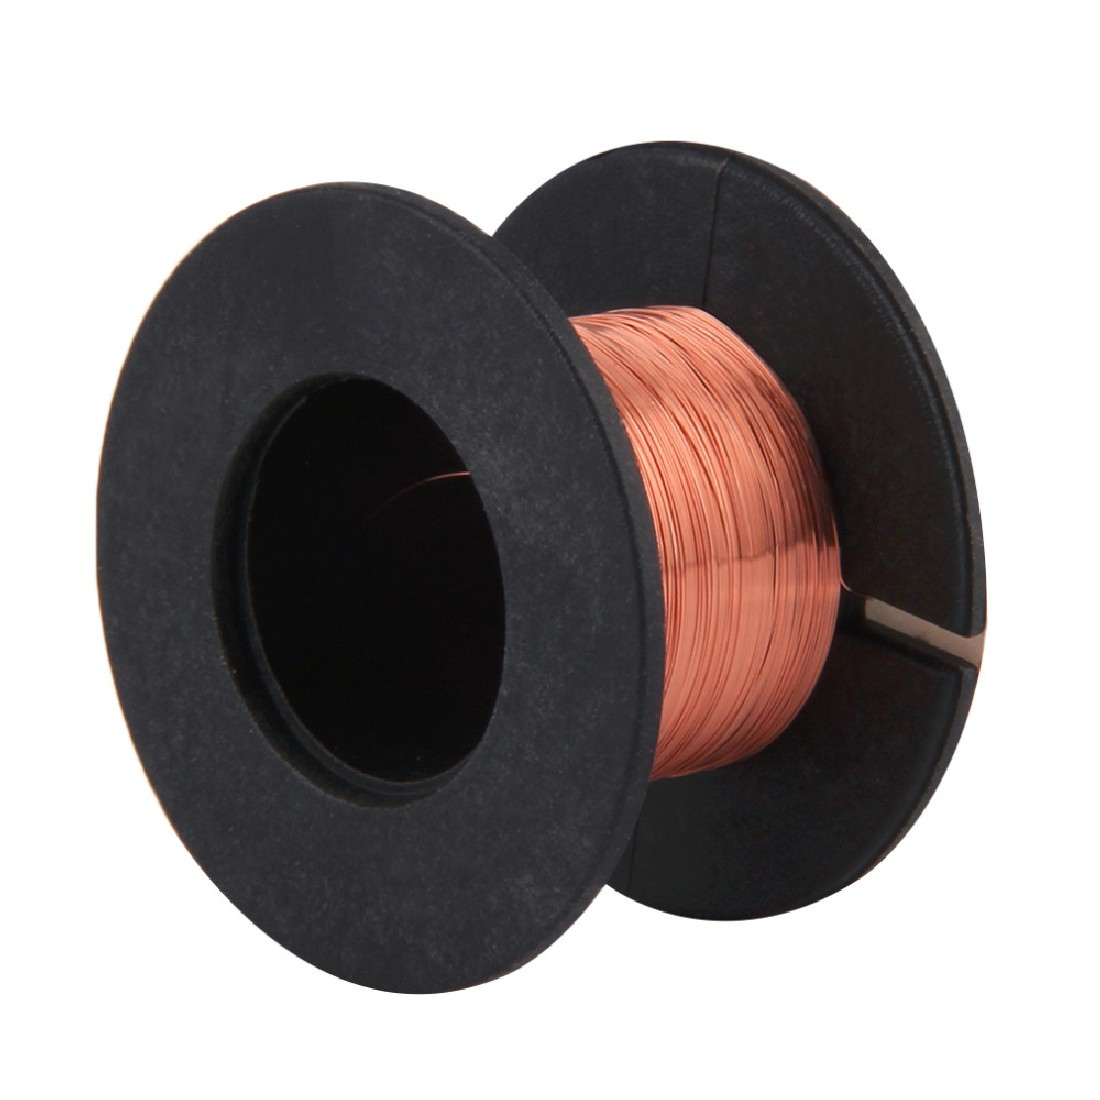 Soldering Solder PPA Enamelled Reel Wire 0.1MM Weld Copper For Welding Repair Maintenance High Quality